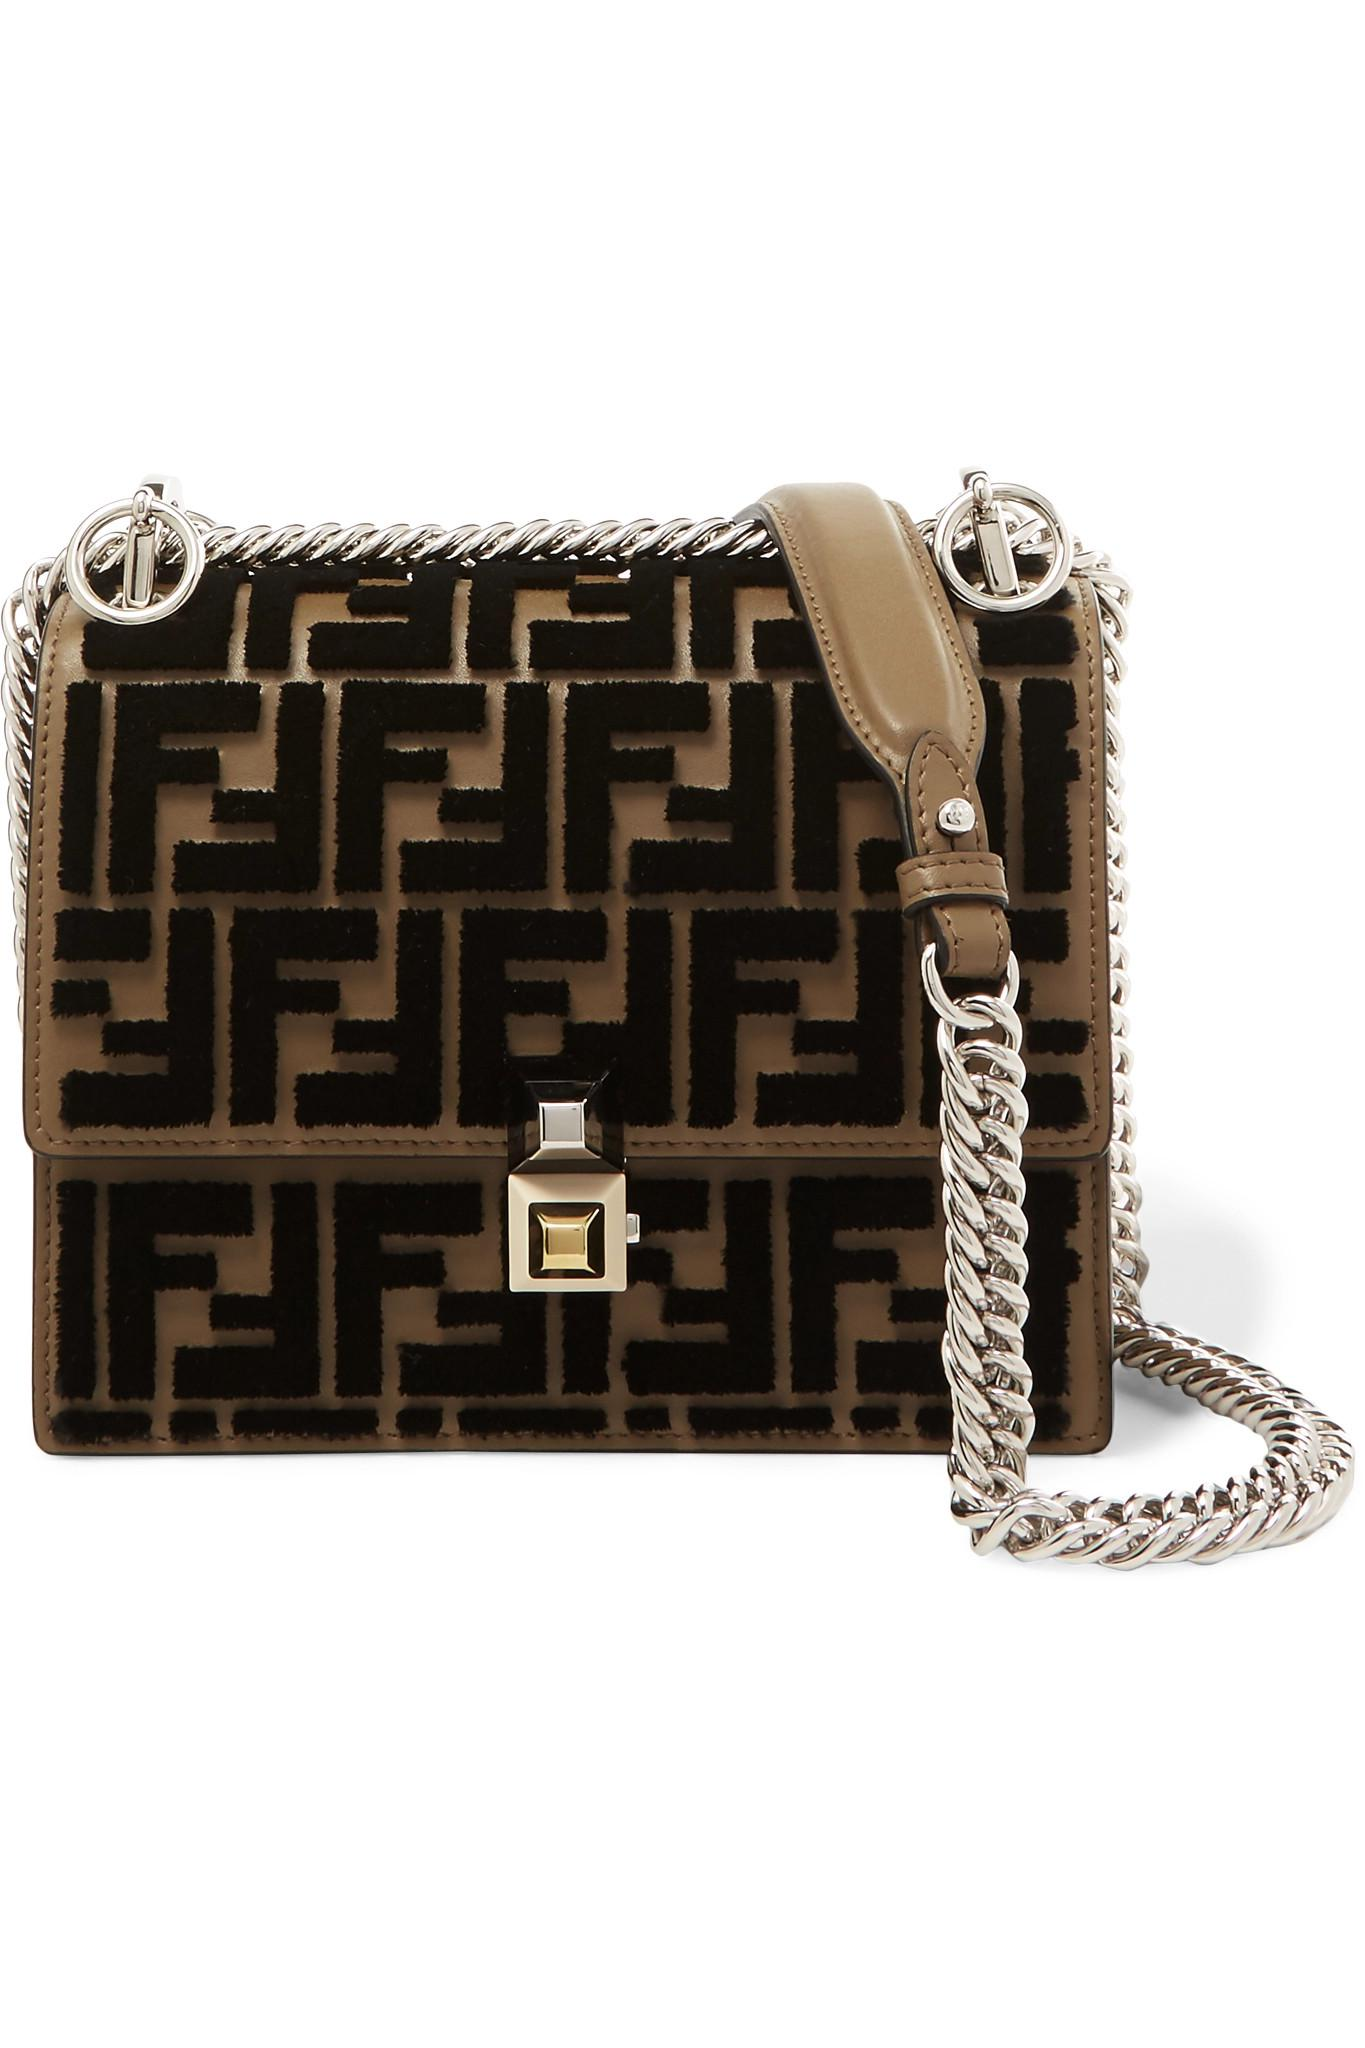 Lyst - Fendi Kan I Small Flocked Leather Shoulder Bag in Brown e53f4f7e66982